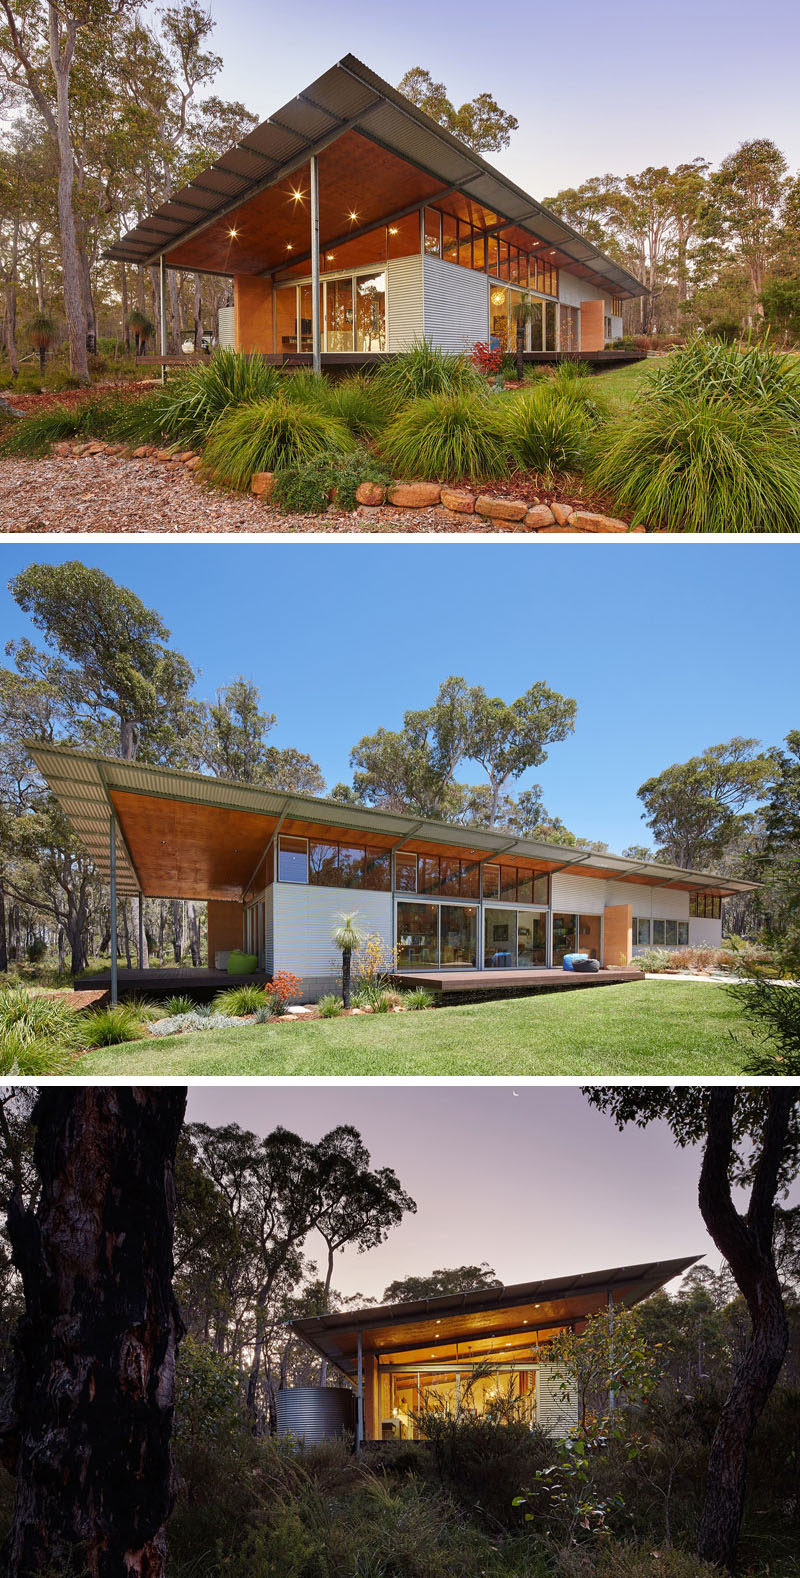 16 Examples Of Modern Houses With A Sloped Roof | This sloped roof on this modern house helps collect rain water and shields the interior of the home from the harsh Australian heat.